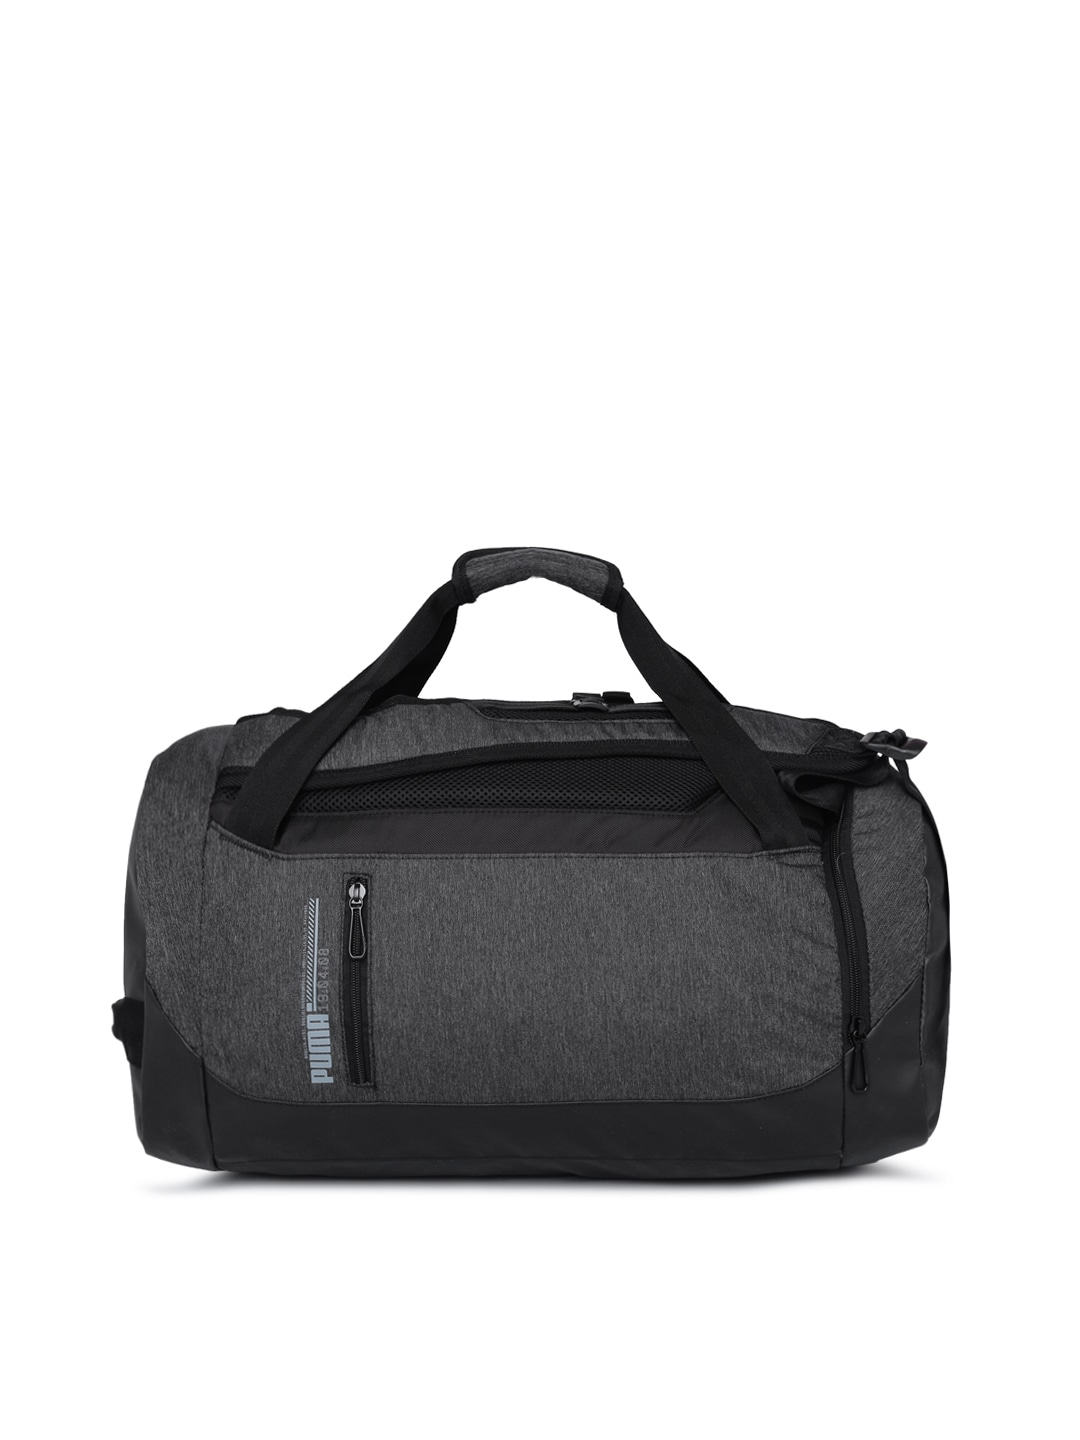 7b00153b35 Men Football Bags - Buy Men Football Bags online in India